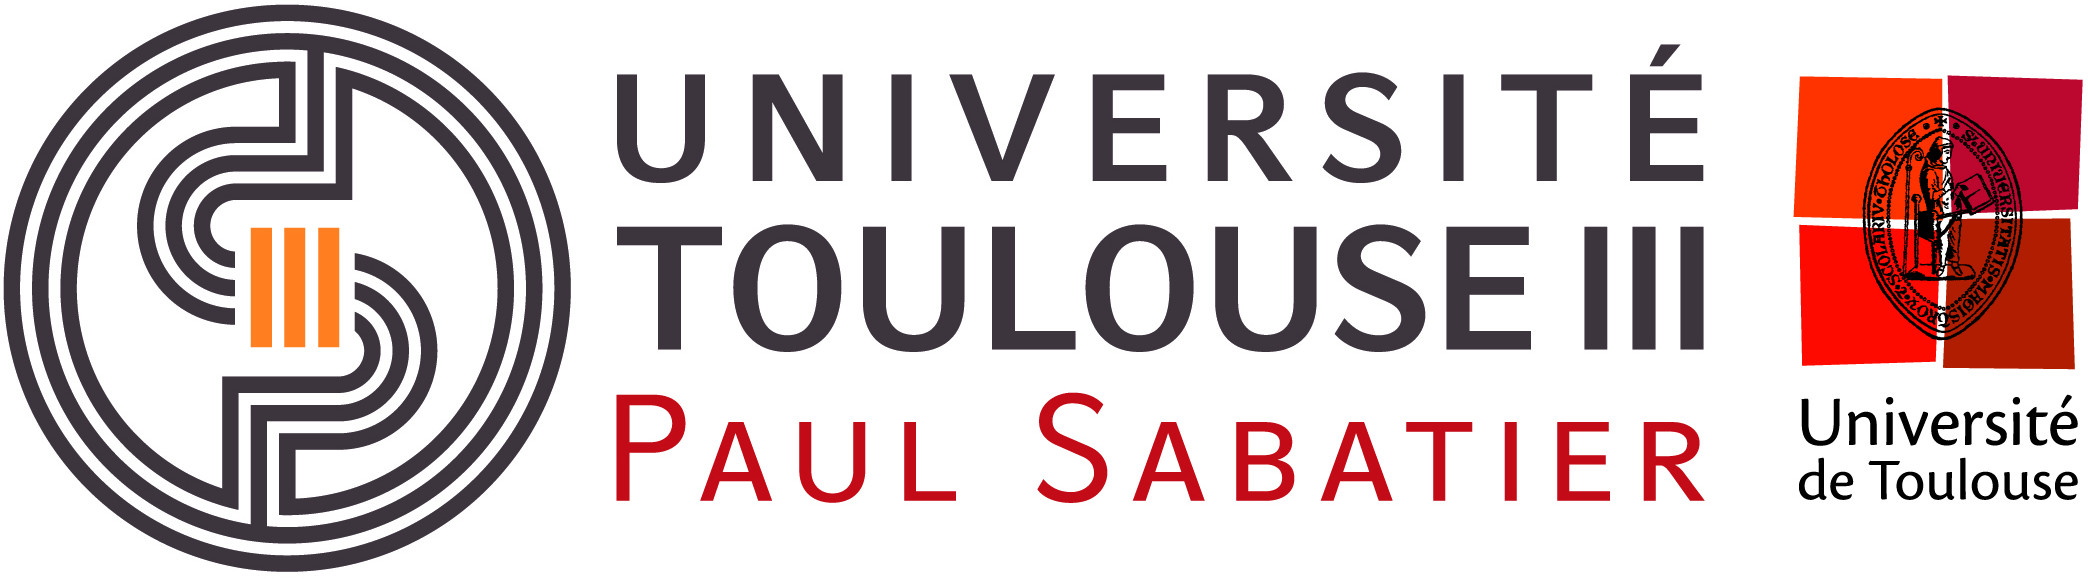 logo Université Toulouse Paul Sabatier